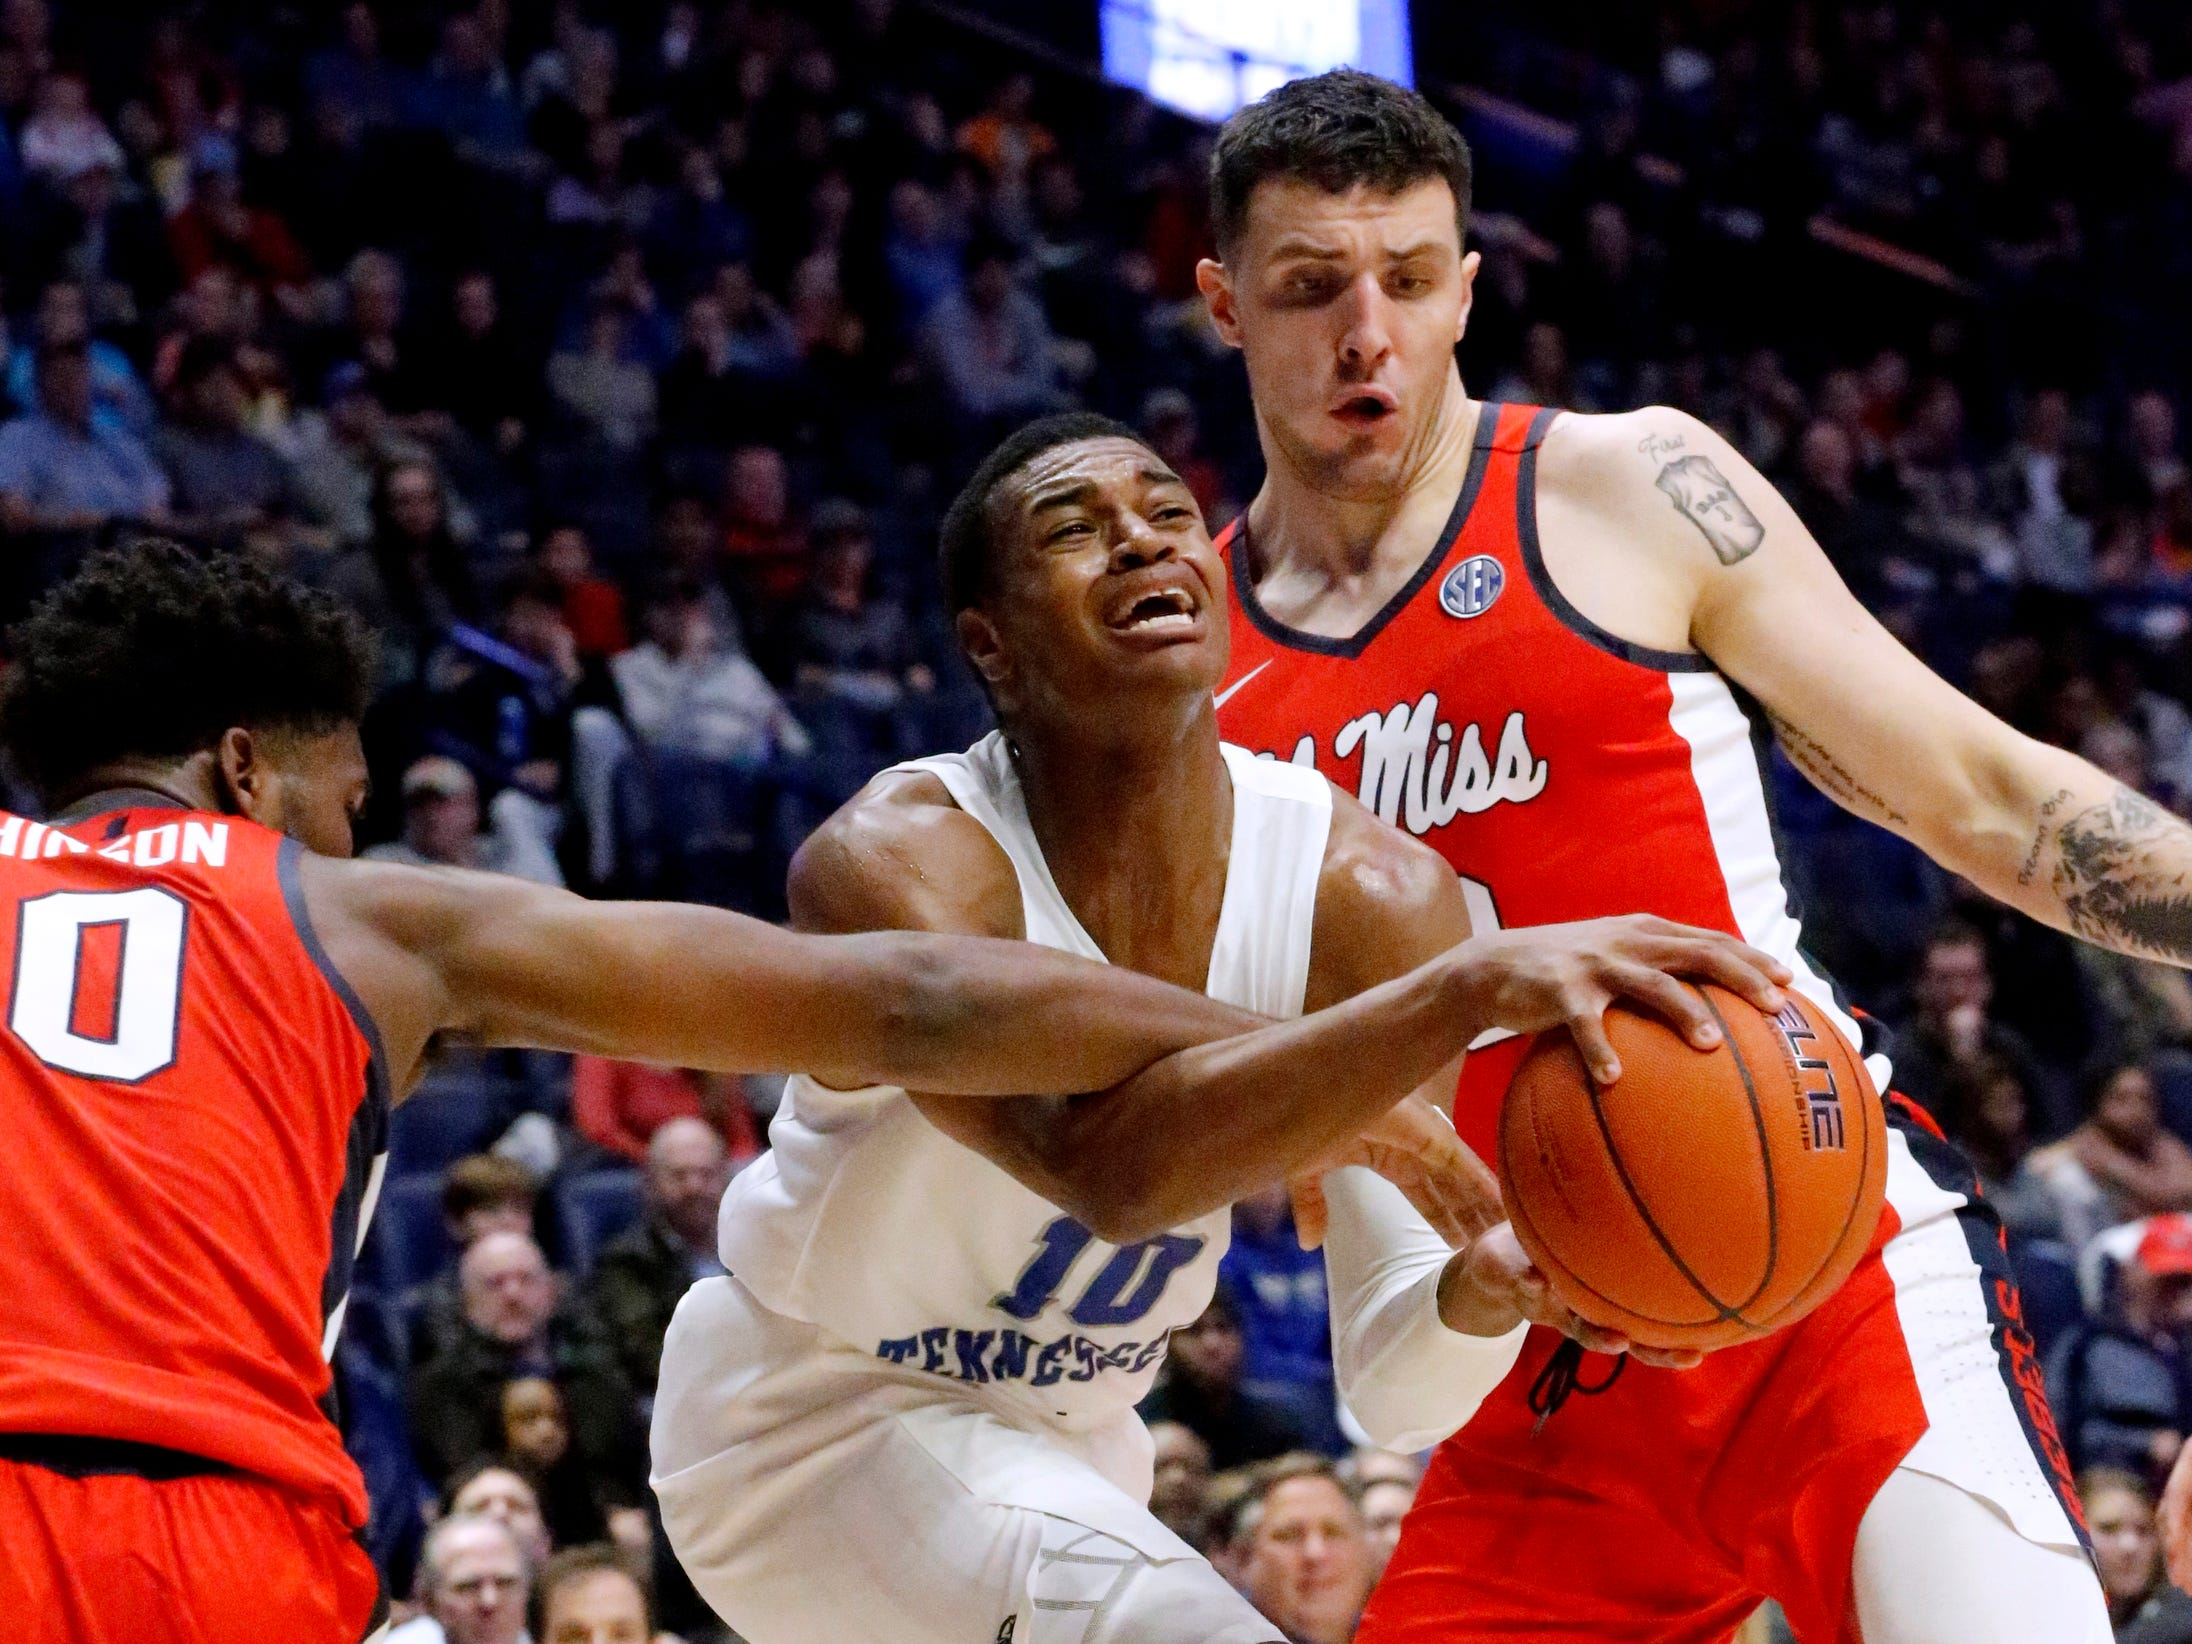 MTSU's guard Jayce Johnson (10) pushes toward the basket as Ole Miss' guard Blake Hinson (0) and Ole Miss' center Dominik Olejniczak (13) guard him on Friday Dec. 21, 2018, at Bridgestone Arena.